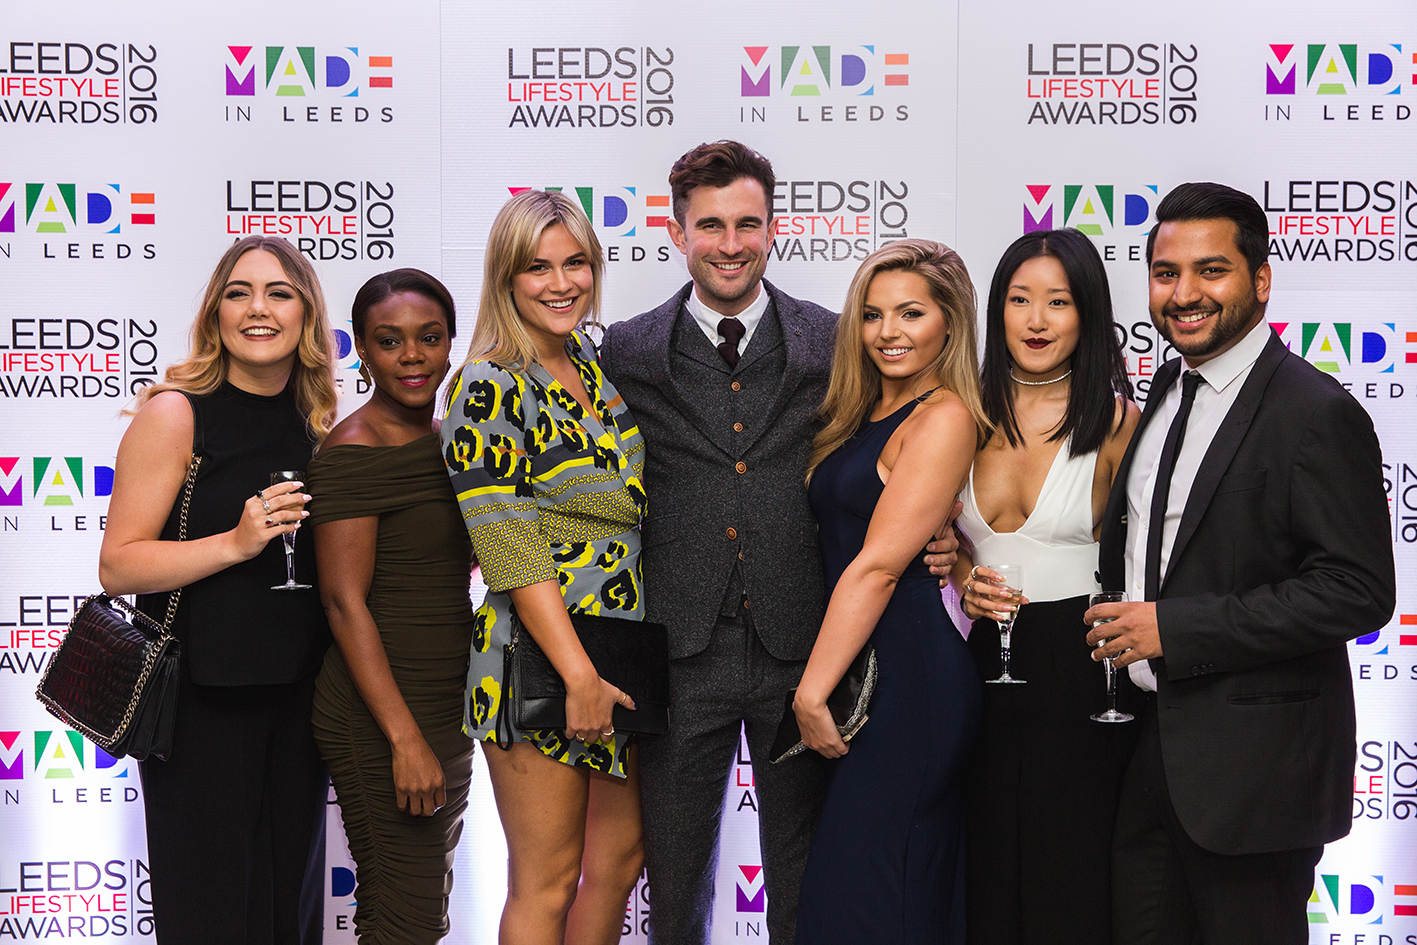 leeds-lifestyle-awards-2016-photos-by-pure-aperture-94-small